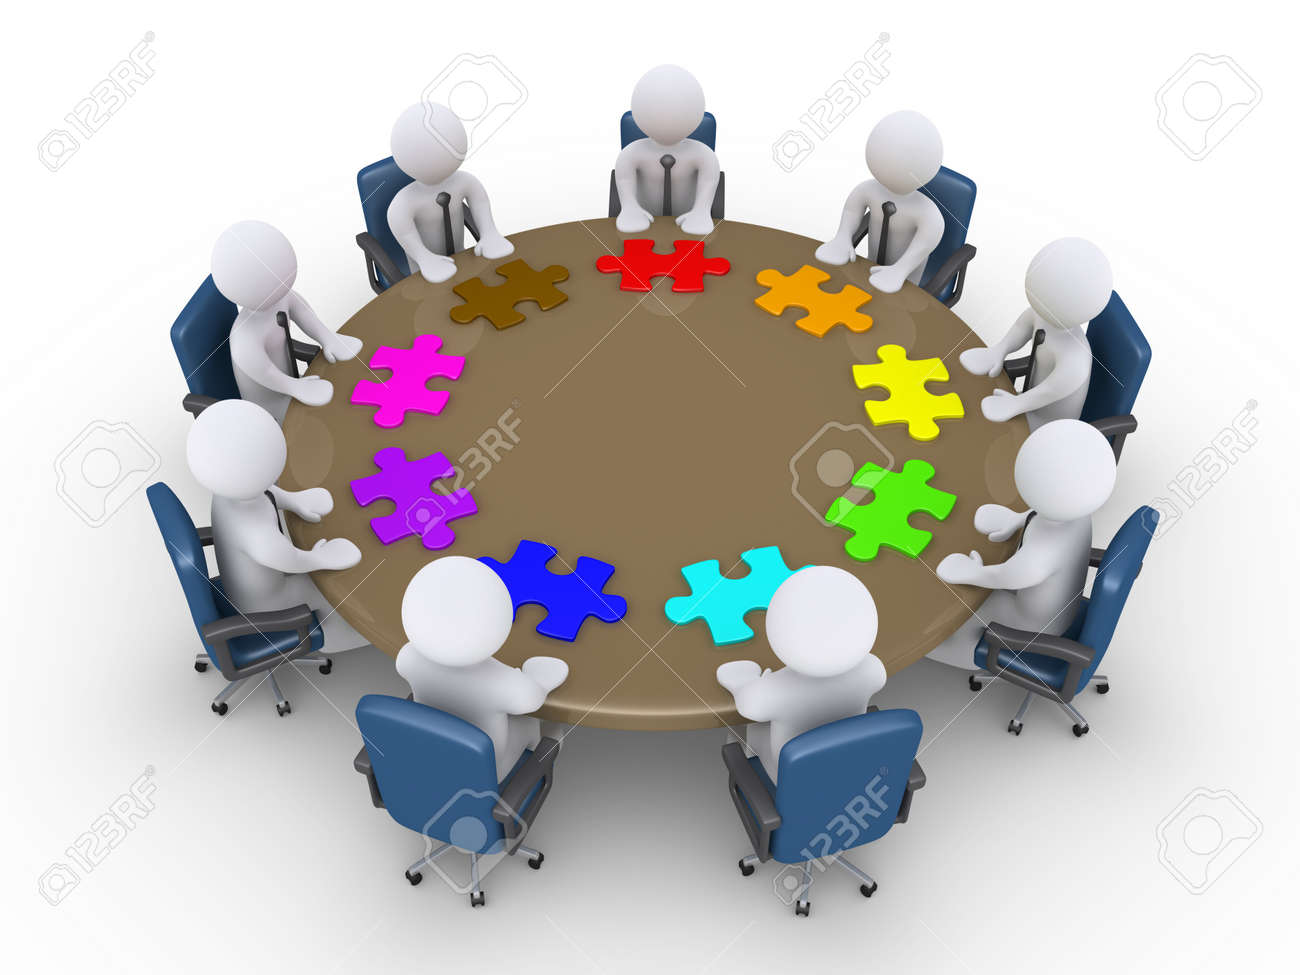 3d businessmen around table and different puzzle pieces in front of them Stock Photo - 20936607